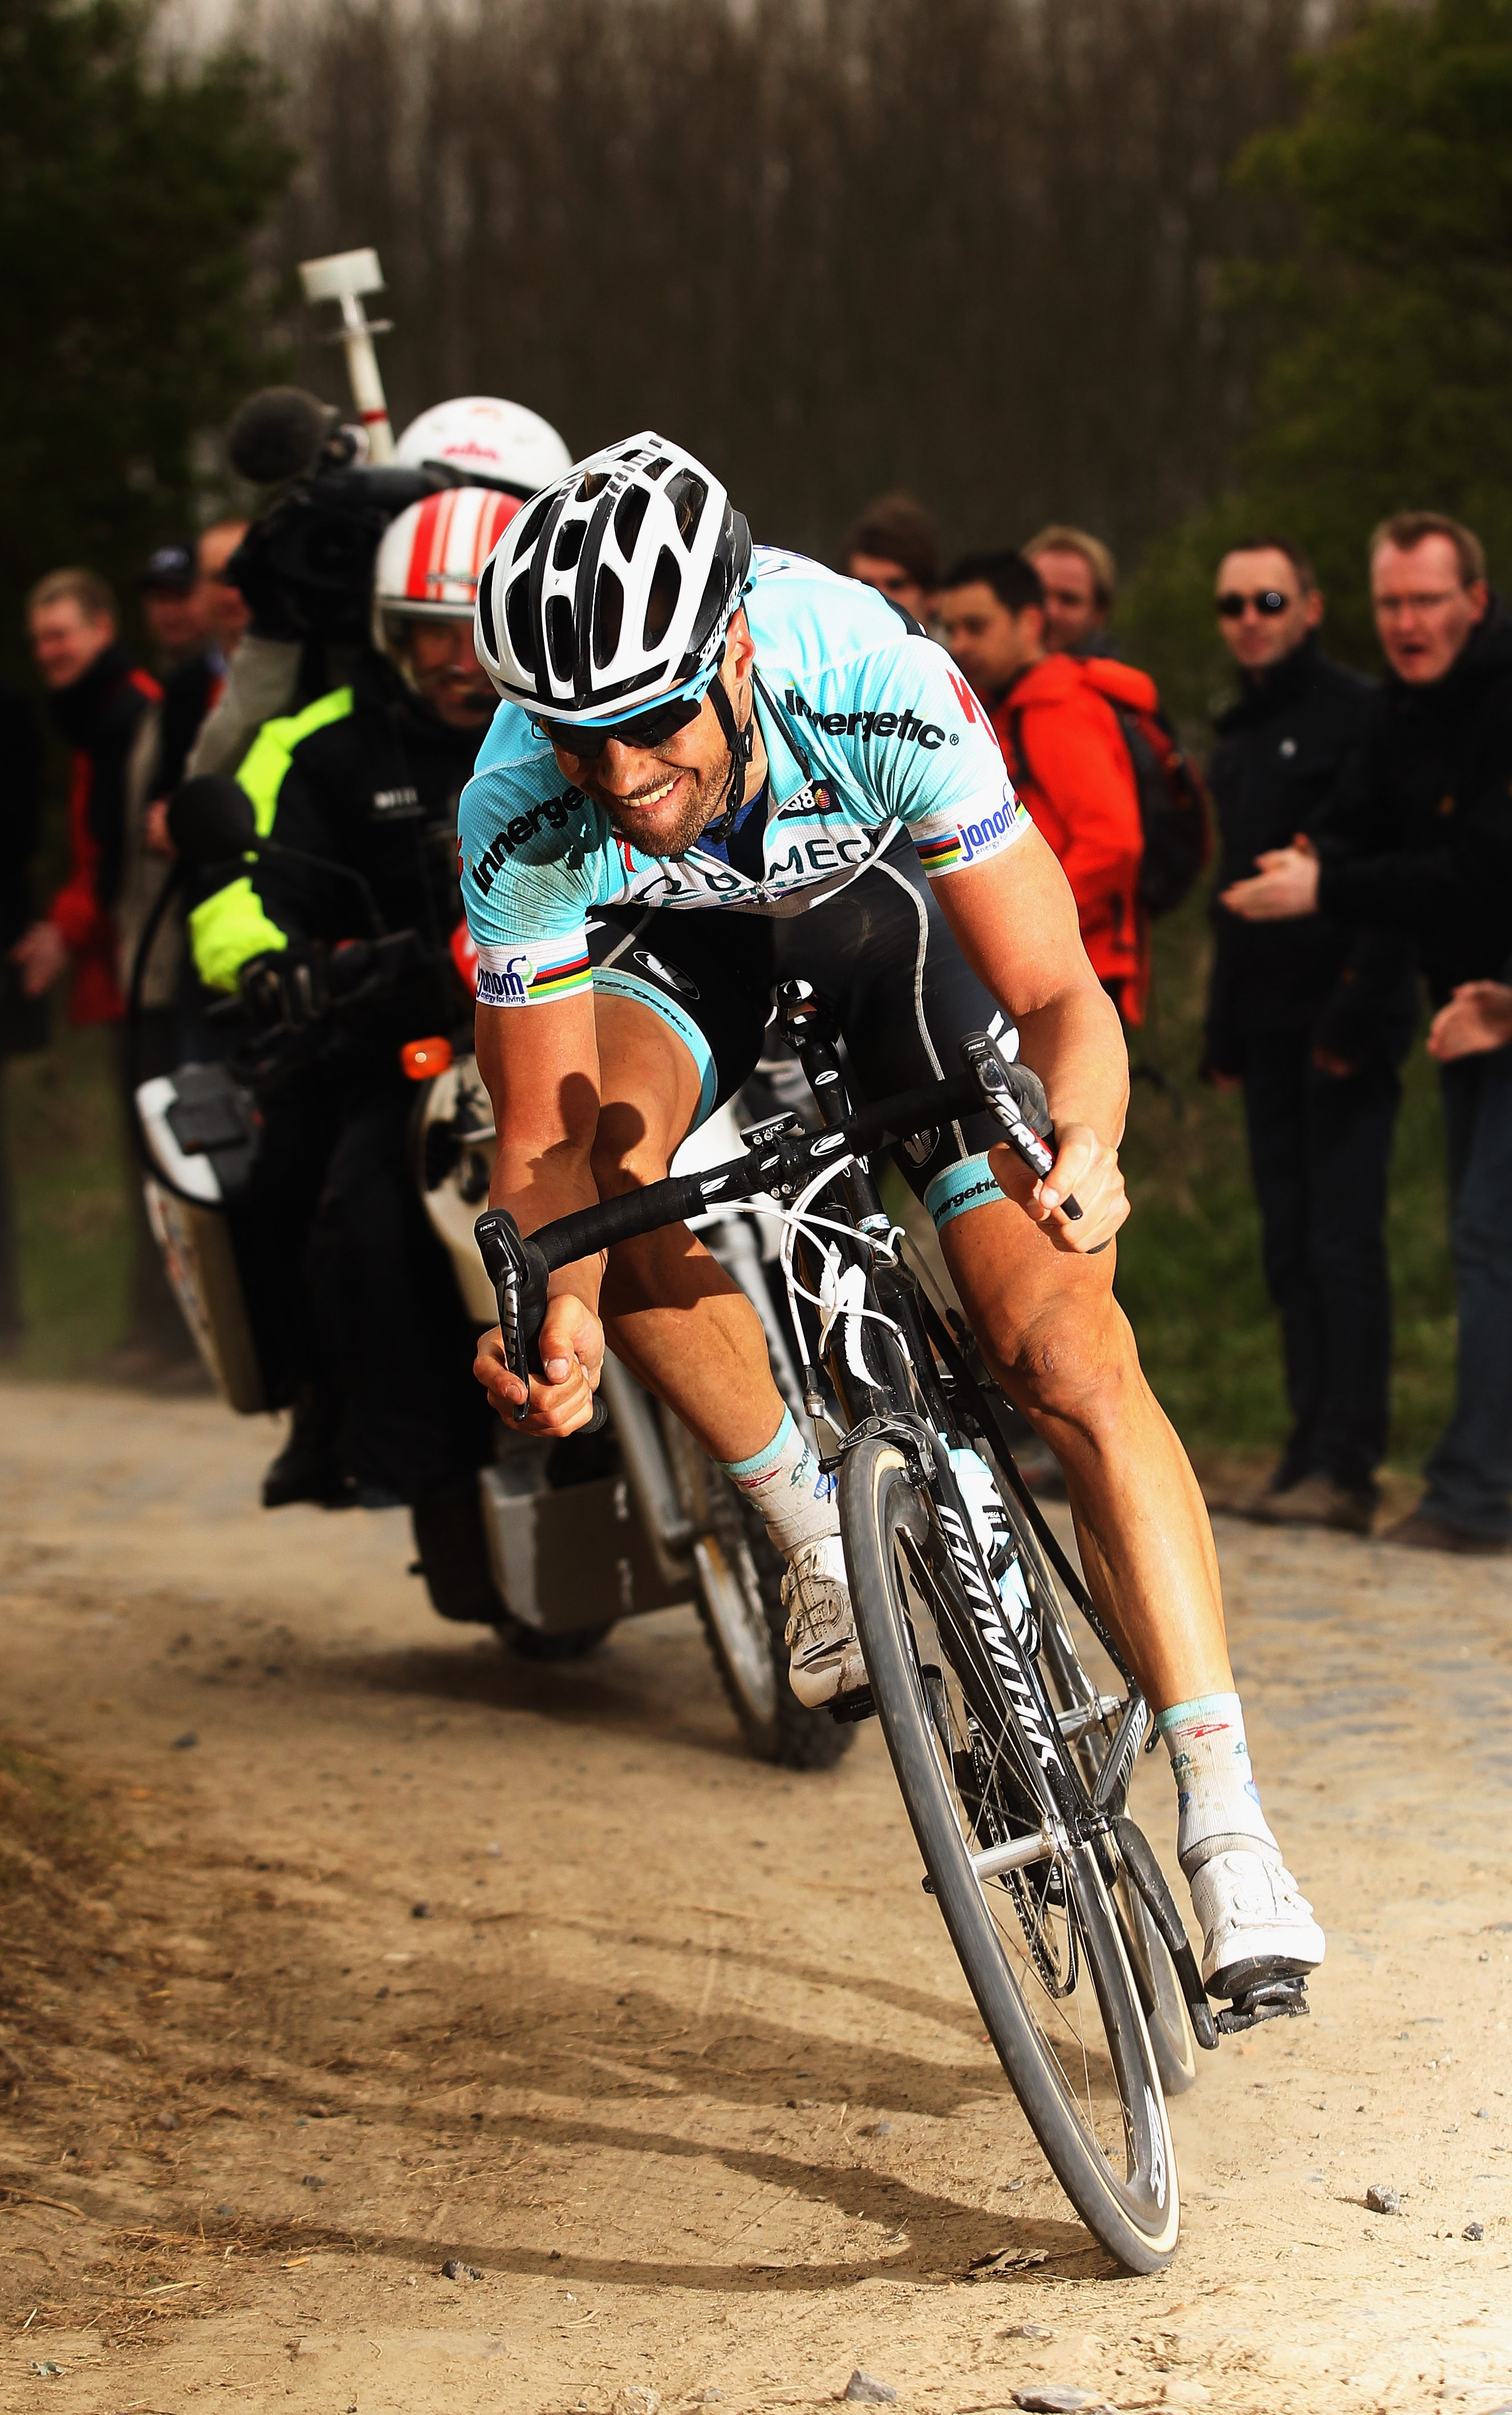 Boonen was out on his own for 52km before claiming his fourth Paris-Roubaix victory